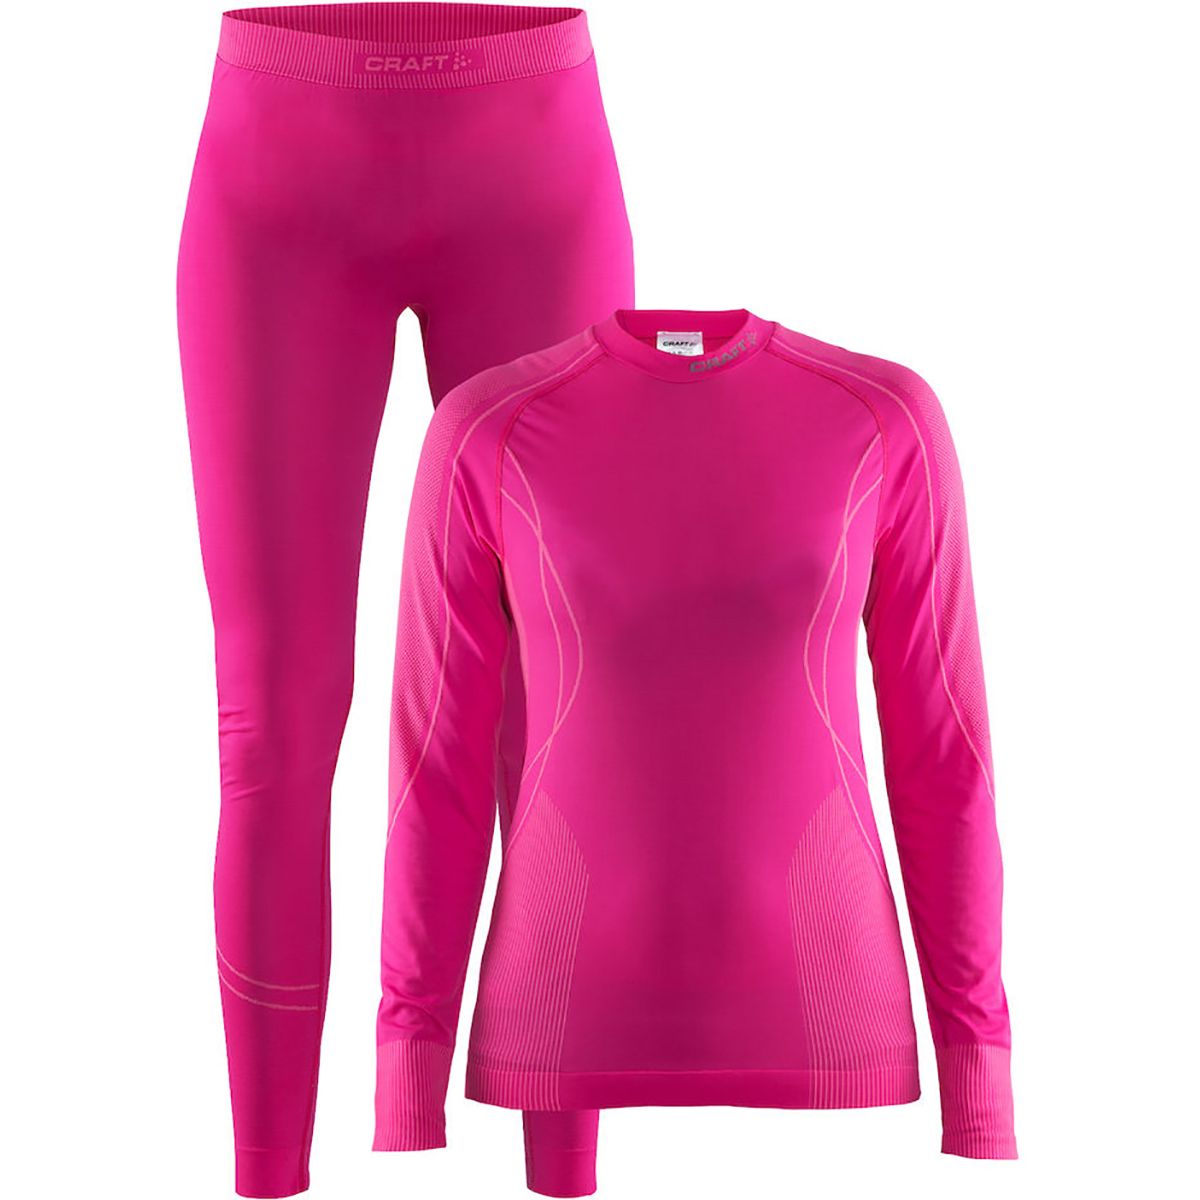 Craft Damen Seamless Zone Wäsche-Set Pink XS